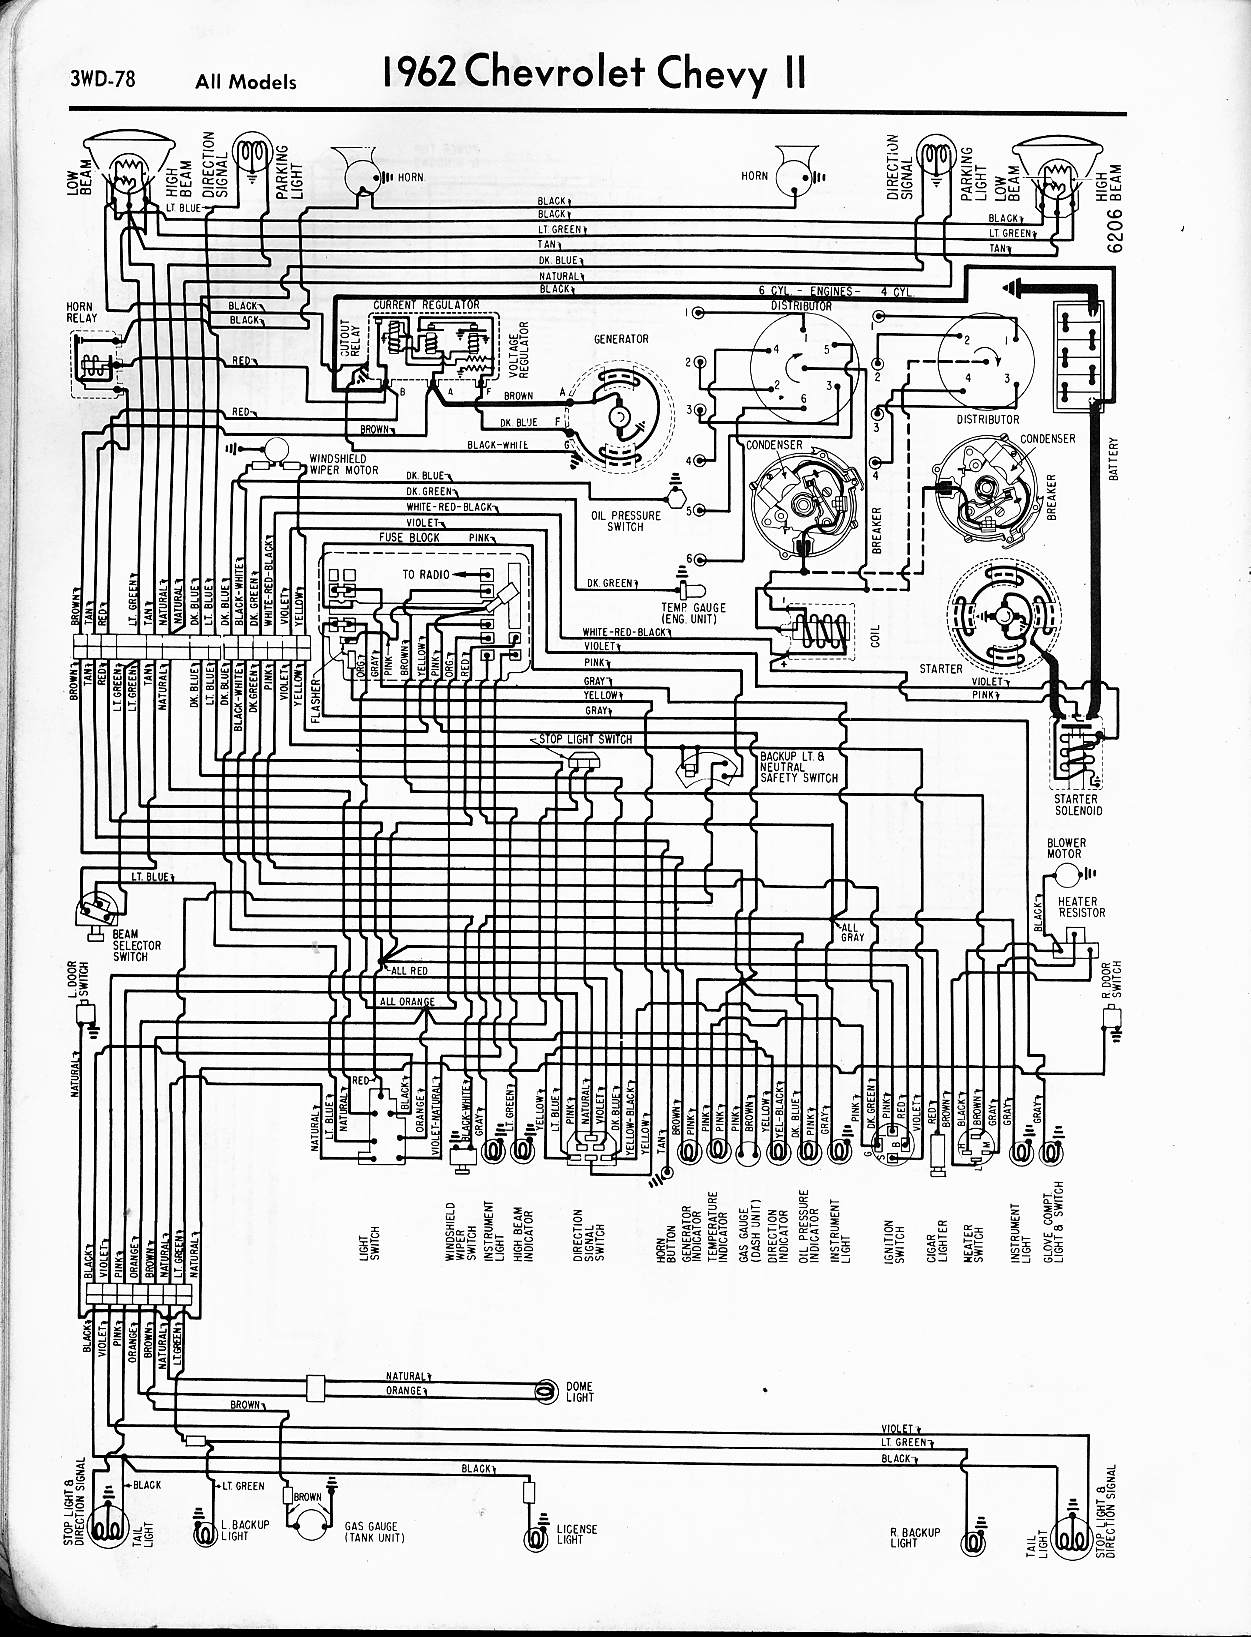 Chevy Gas Gauge Wiring | Wiring Diagram on jeep headlight switch wiring diagram, jeep dome light wiring diagram, jeep brake light wiring diagram, jeep wiper switch wiring diagram, jeep speaker wiring diagram, jeep fuel gauge wheels, jeep ignition coil wiring diagram, jeep engine wiring diagram, jeep transmission wiring diagram, jeep voltage regulator wiring diagram, jeep cj5 wiring-diagram, jeep backup camera wiring diagram, jeep steering column wiring diagram, jeep tail light wiring diagram, jeep backup light wiring diagram, jeep speed sensor wiring diagram,